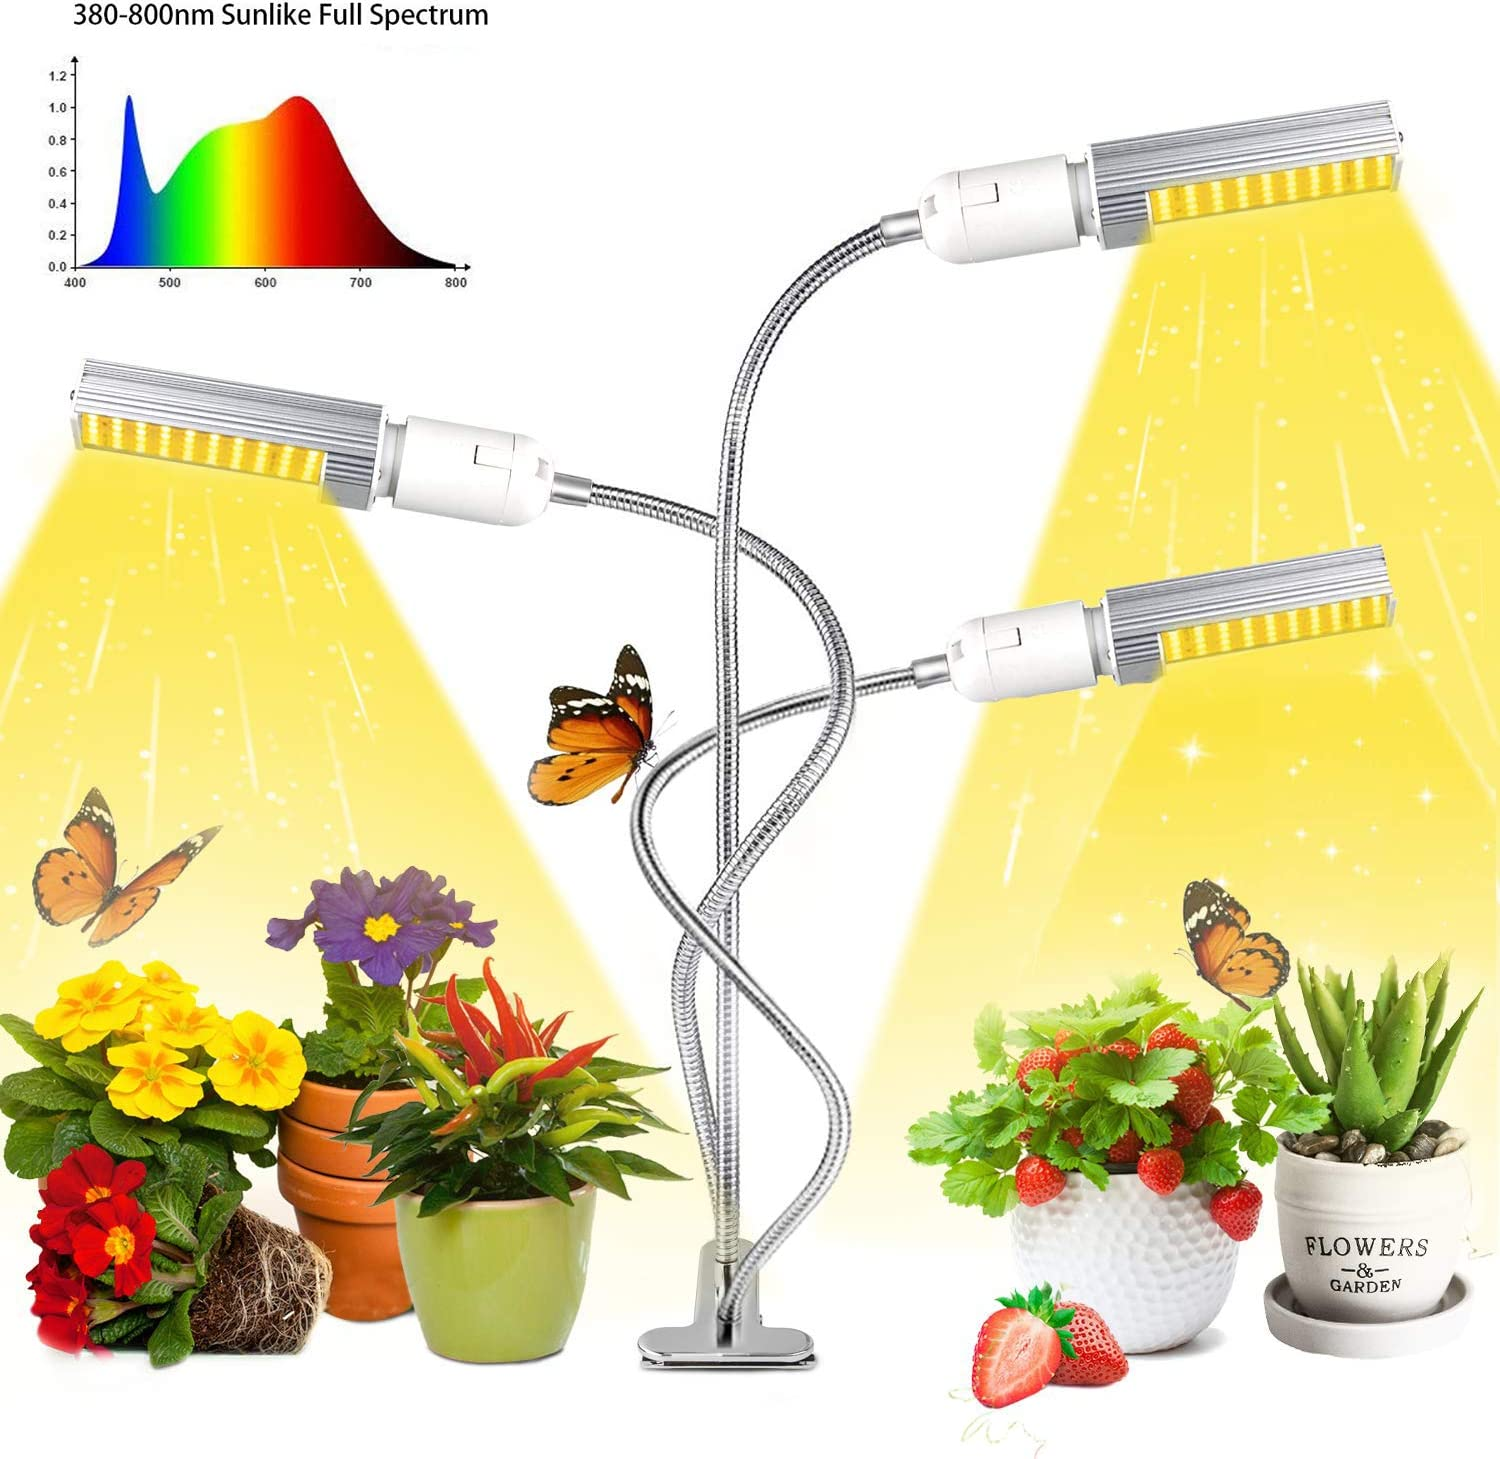 Orecla Newest 65W Led Grow Light for Indoor Plants, Super Bright 132 LEDs Sunlike Full Spectrum Grow Lamp White, Three Head Gooseneck Desk Plant Light